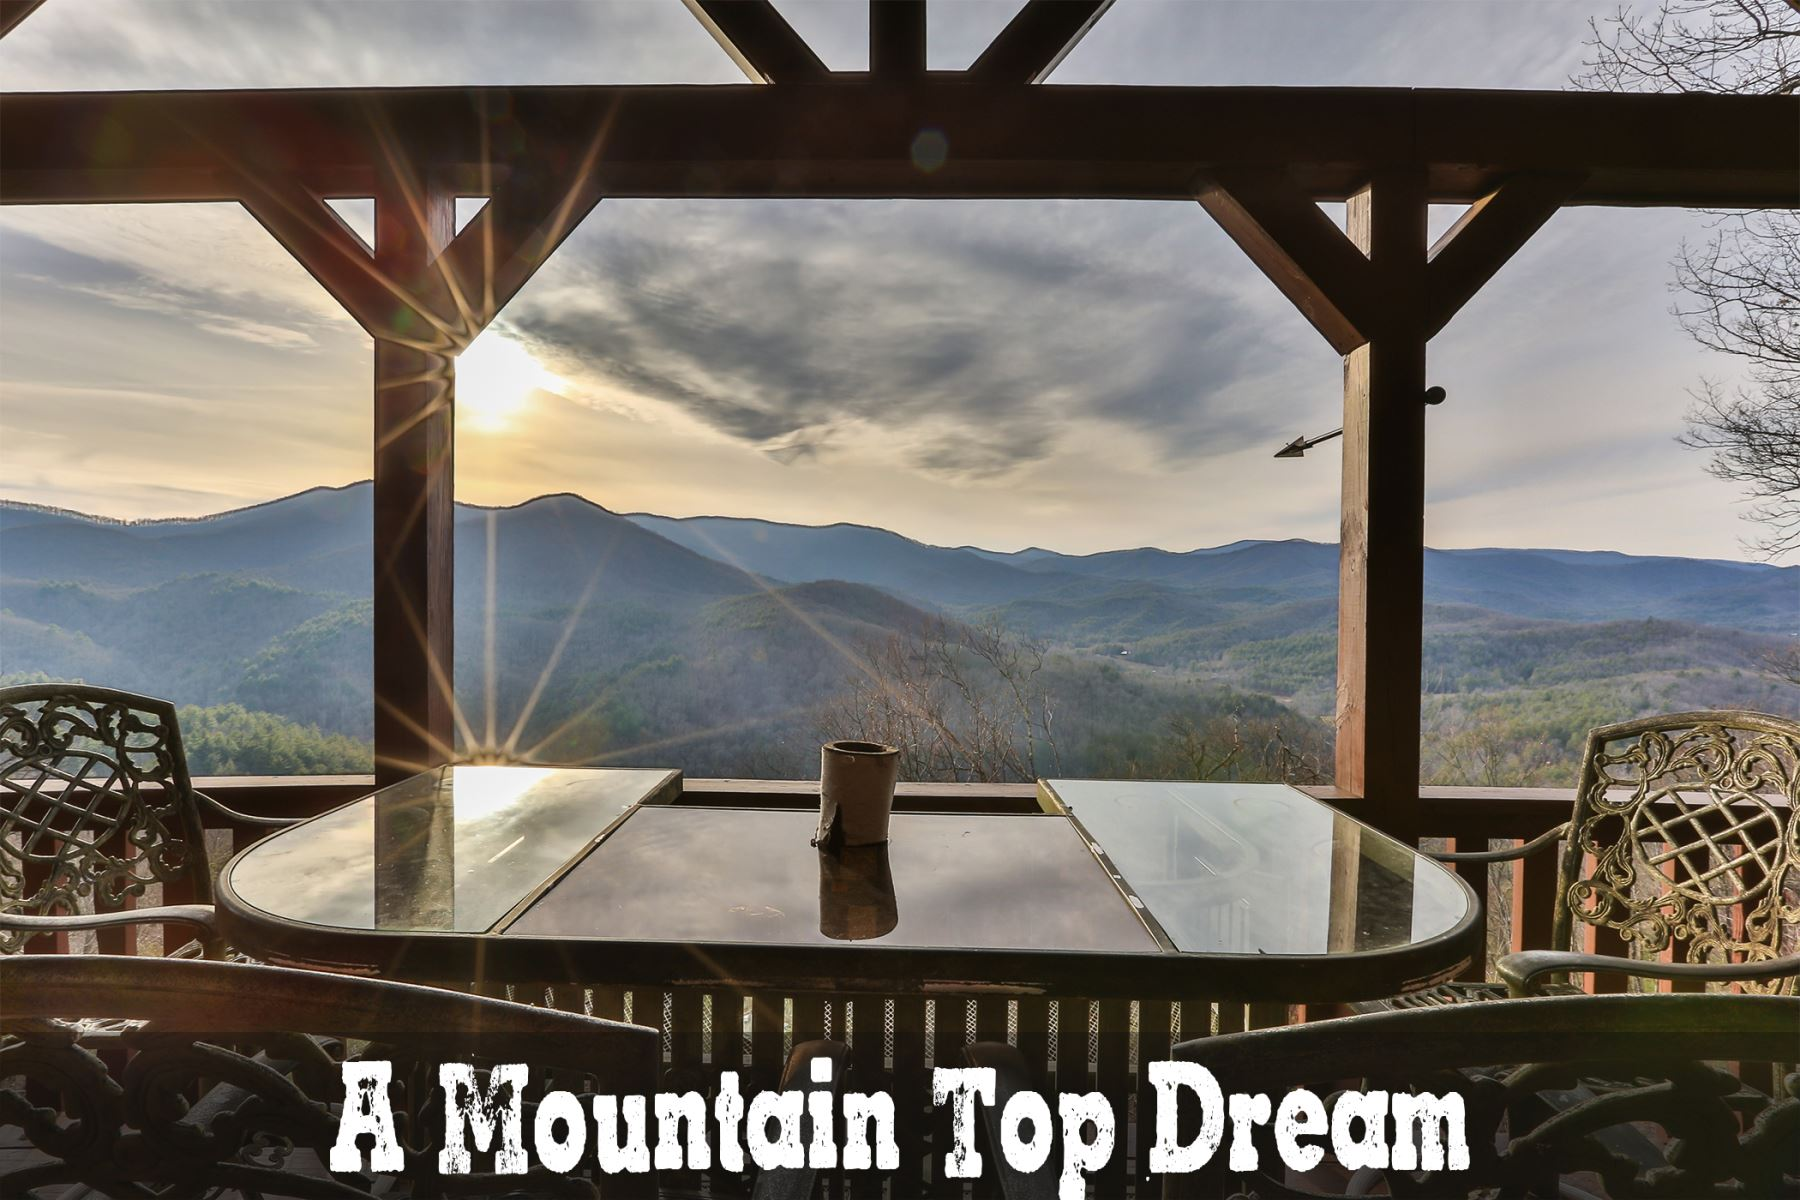 A Mountain Top Dream